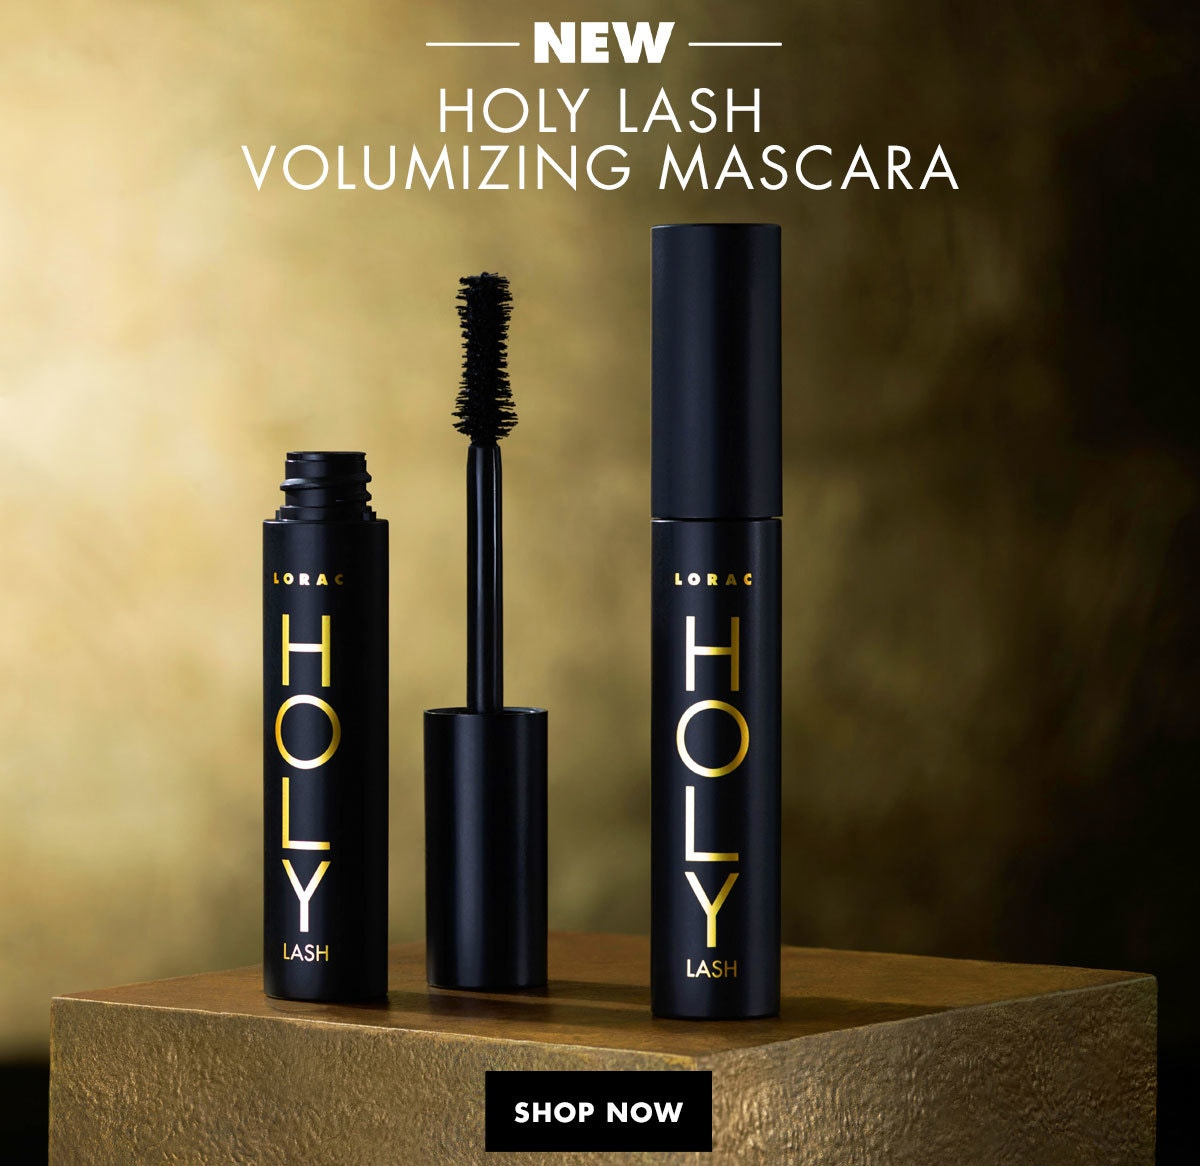 NEW Holy Lash Volumizing Mascara | Shop Now | Lorac | Product front facing, one with cap removed and one with cap fastenend, with beige and black background